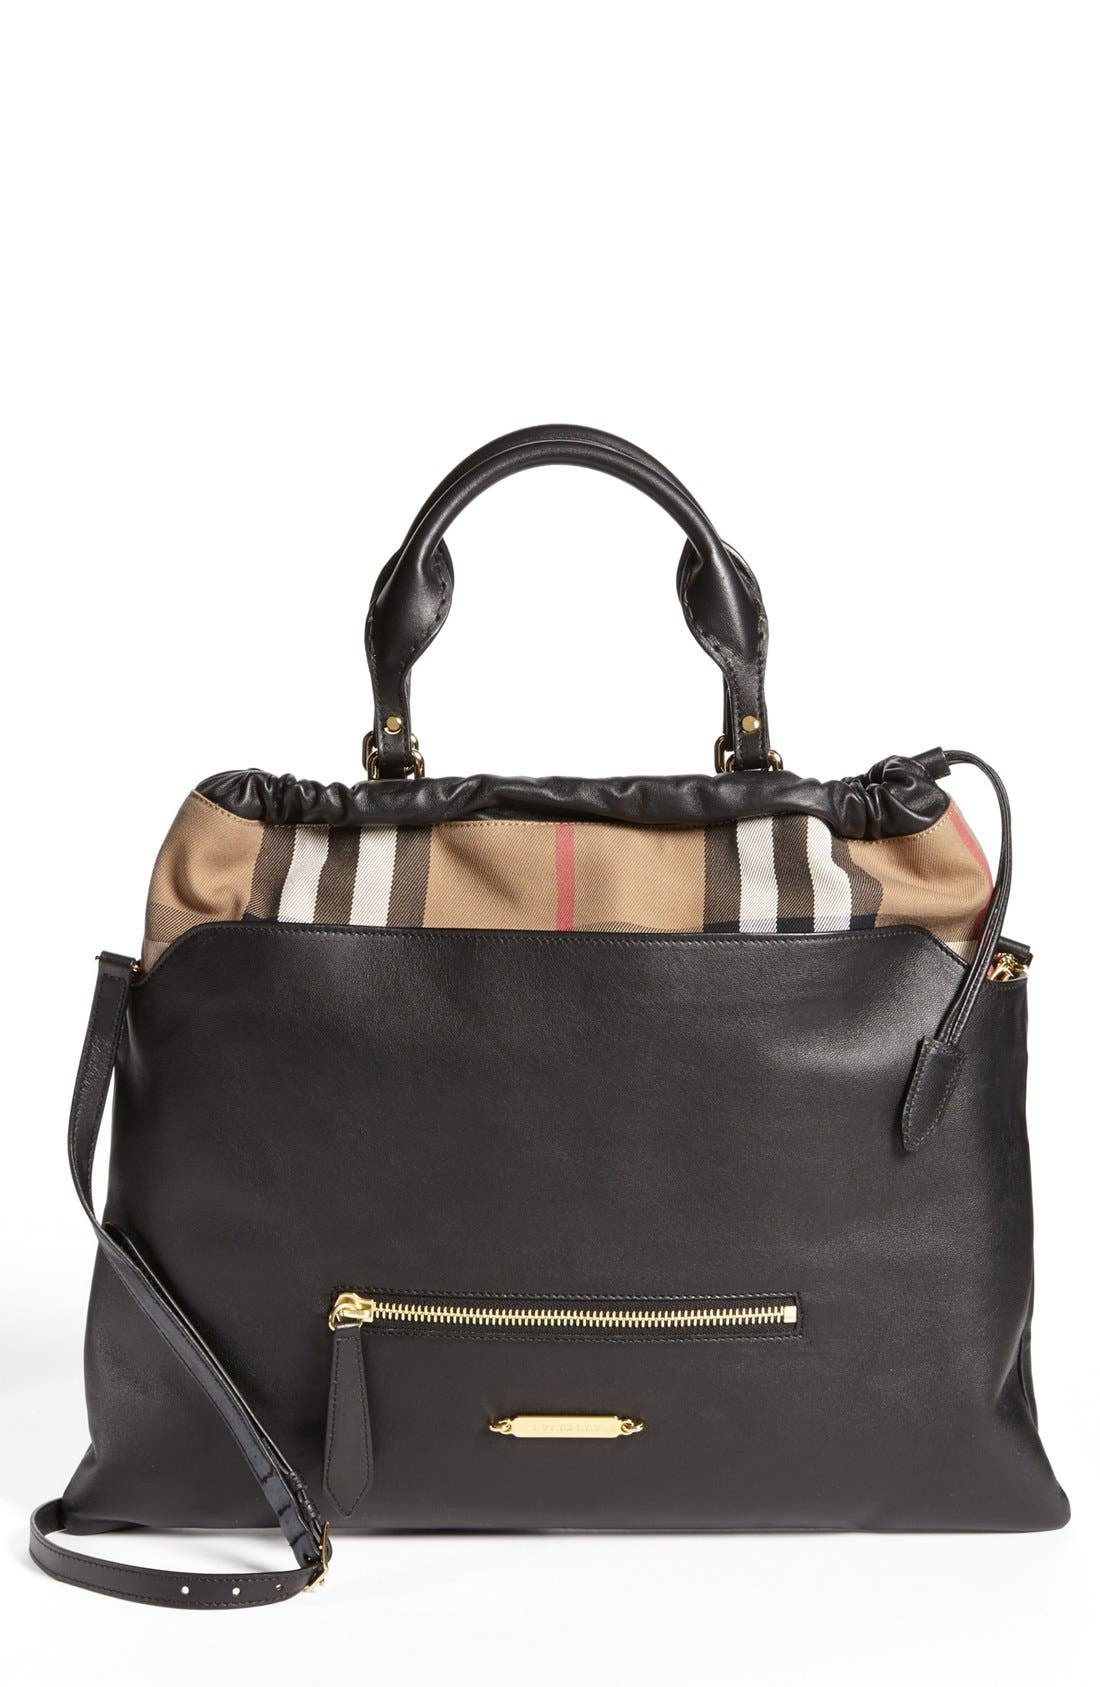 Main Image - Burberry 'Big Crush - House Check' Leather Tote